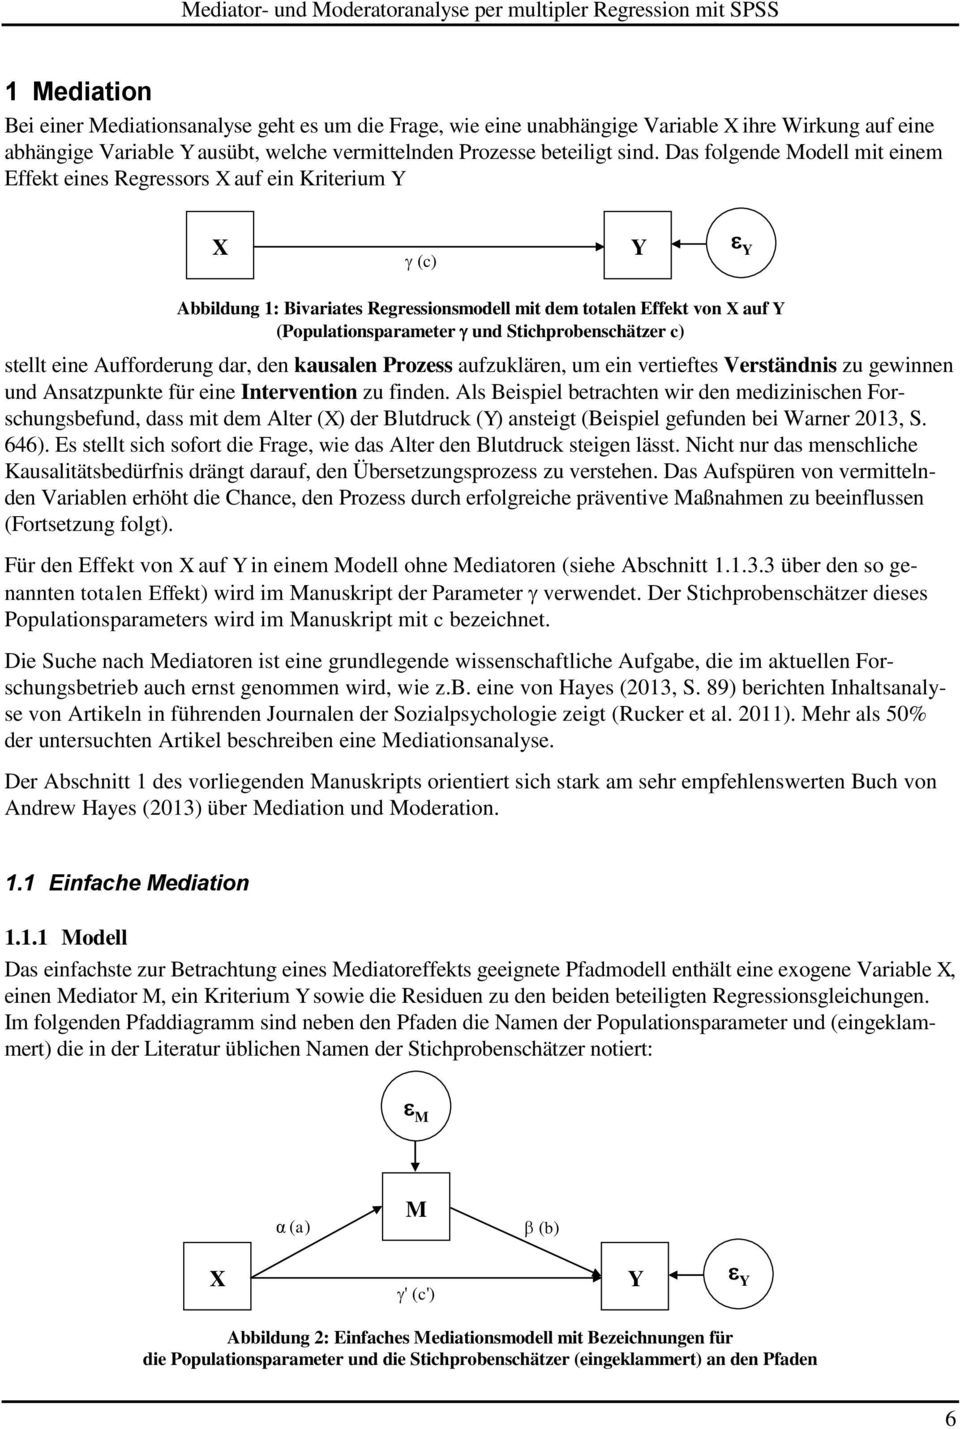 Ziemlich Y Diagrammvorlage Fotos - Entry Level Resume Vorlagen ...